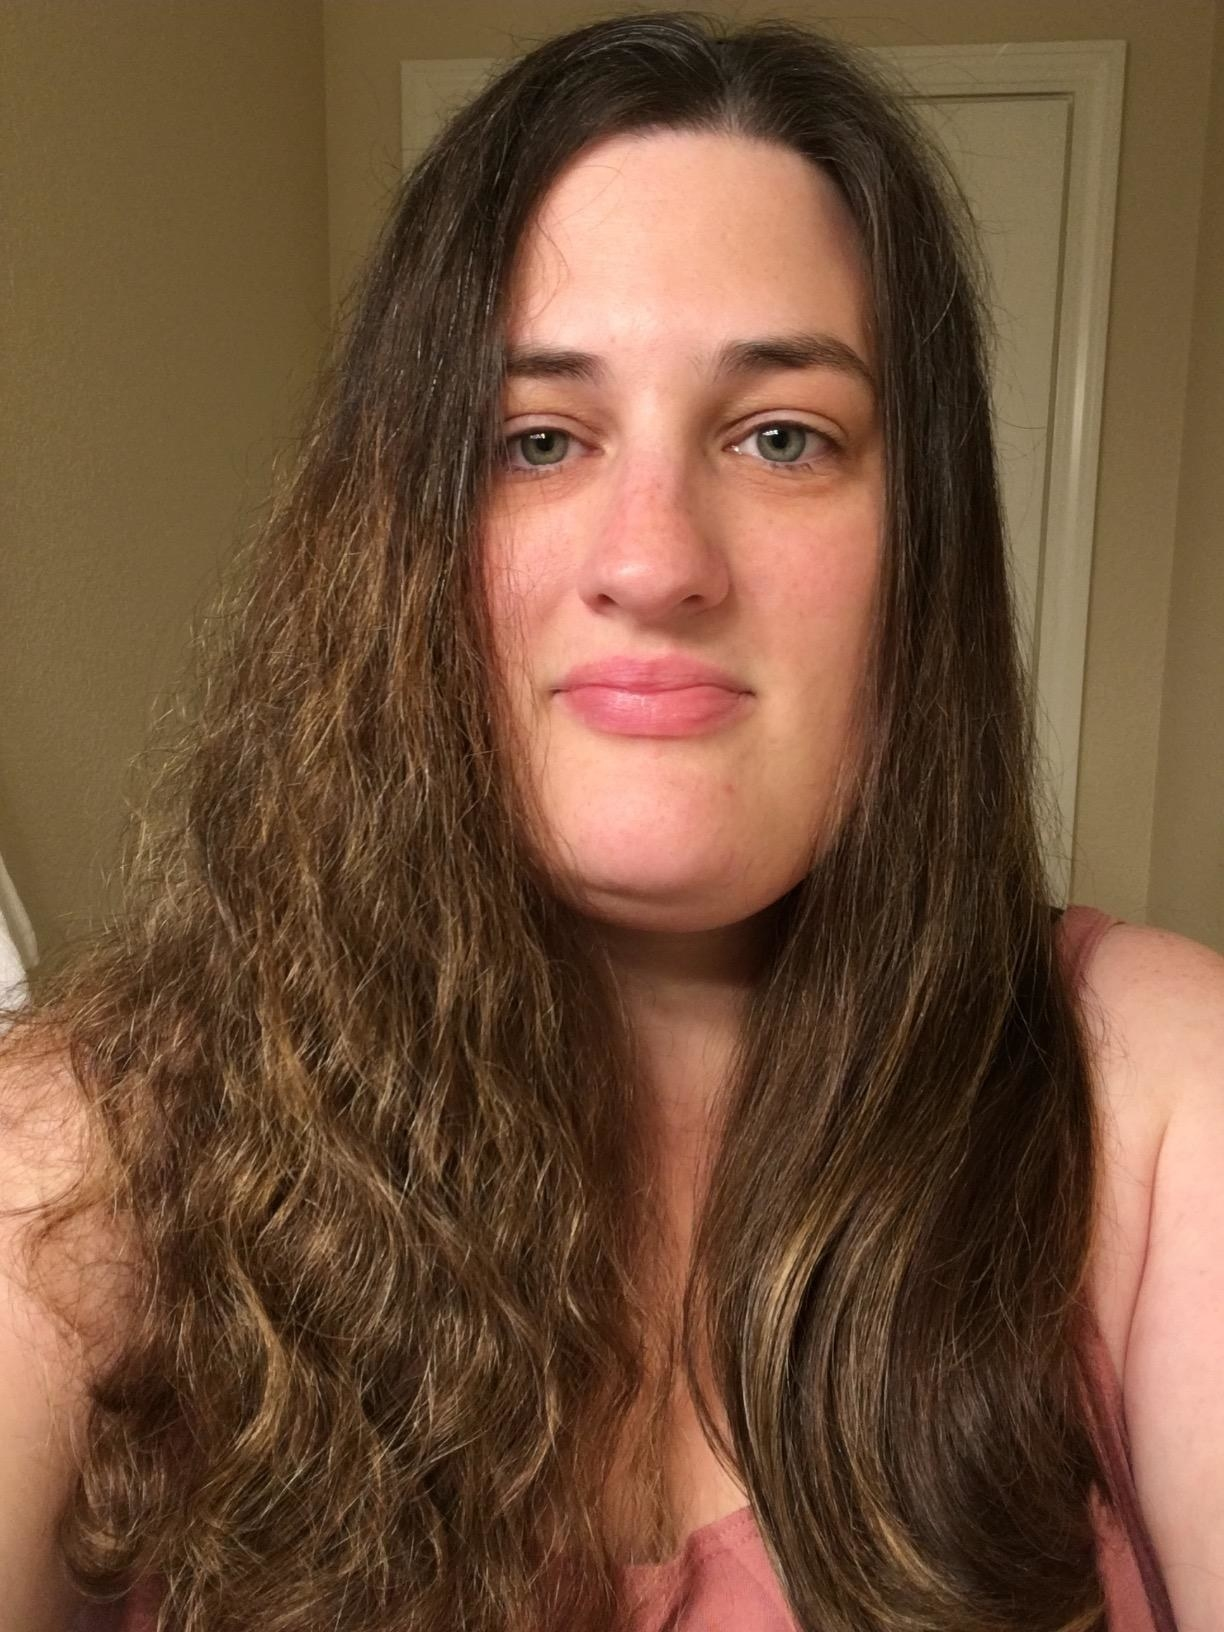 reviewer shows one side of their hair looking frizzy and wavy and the other half looking silky smooth and straight